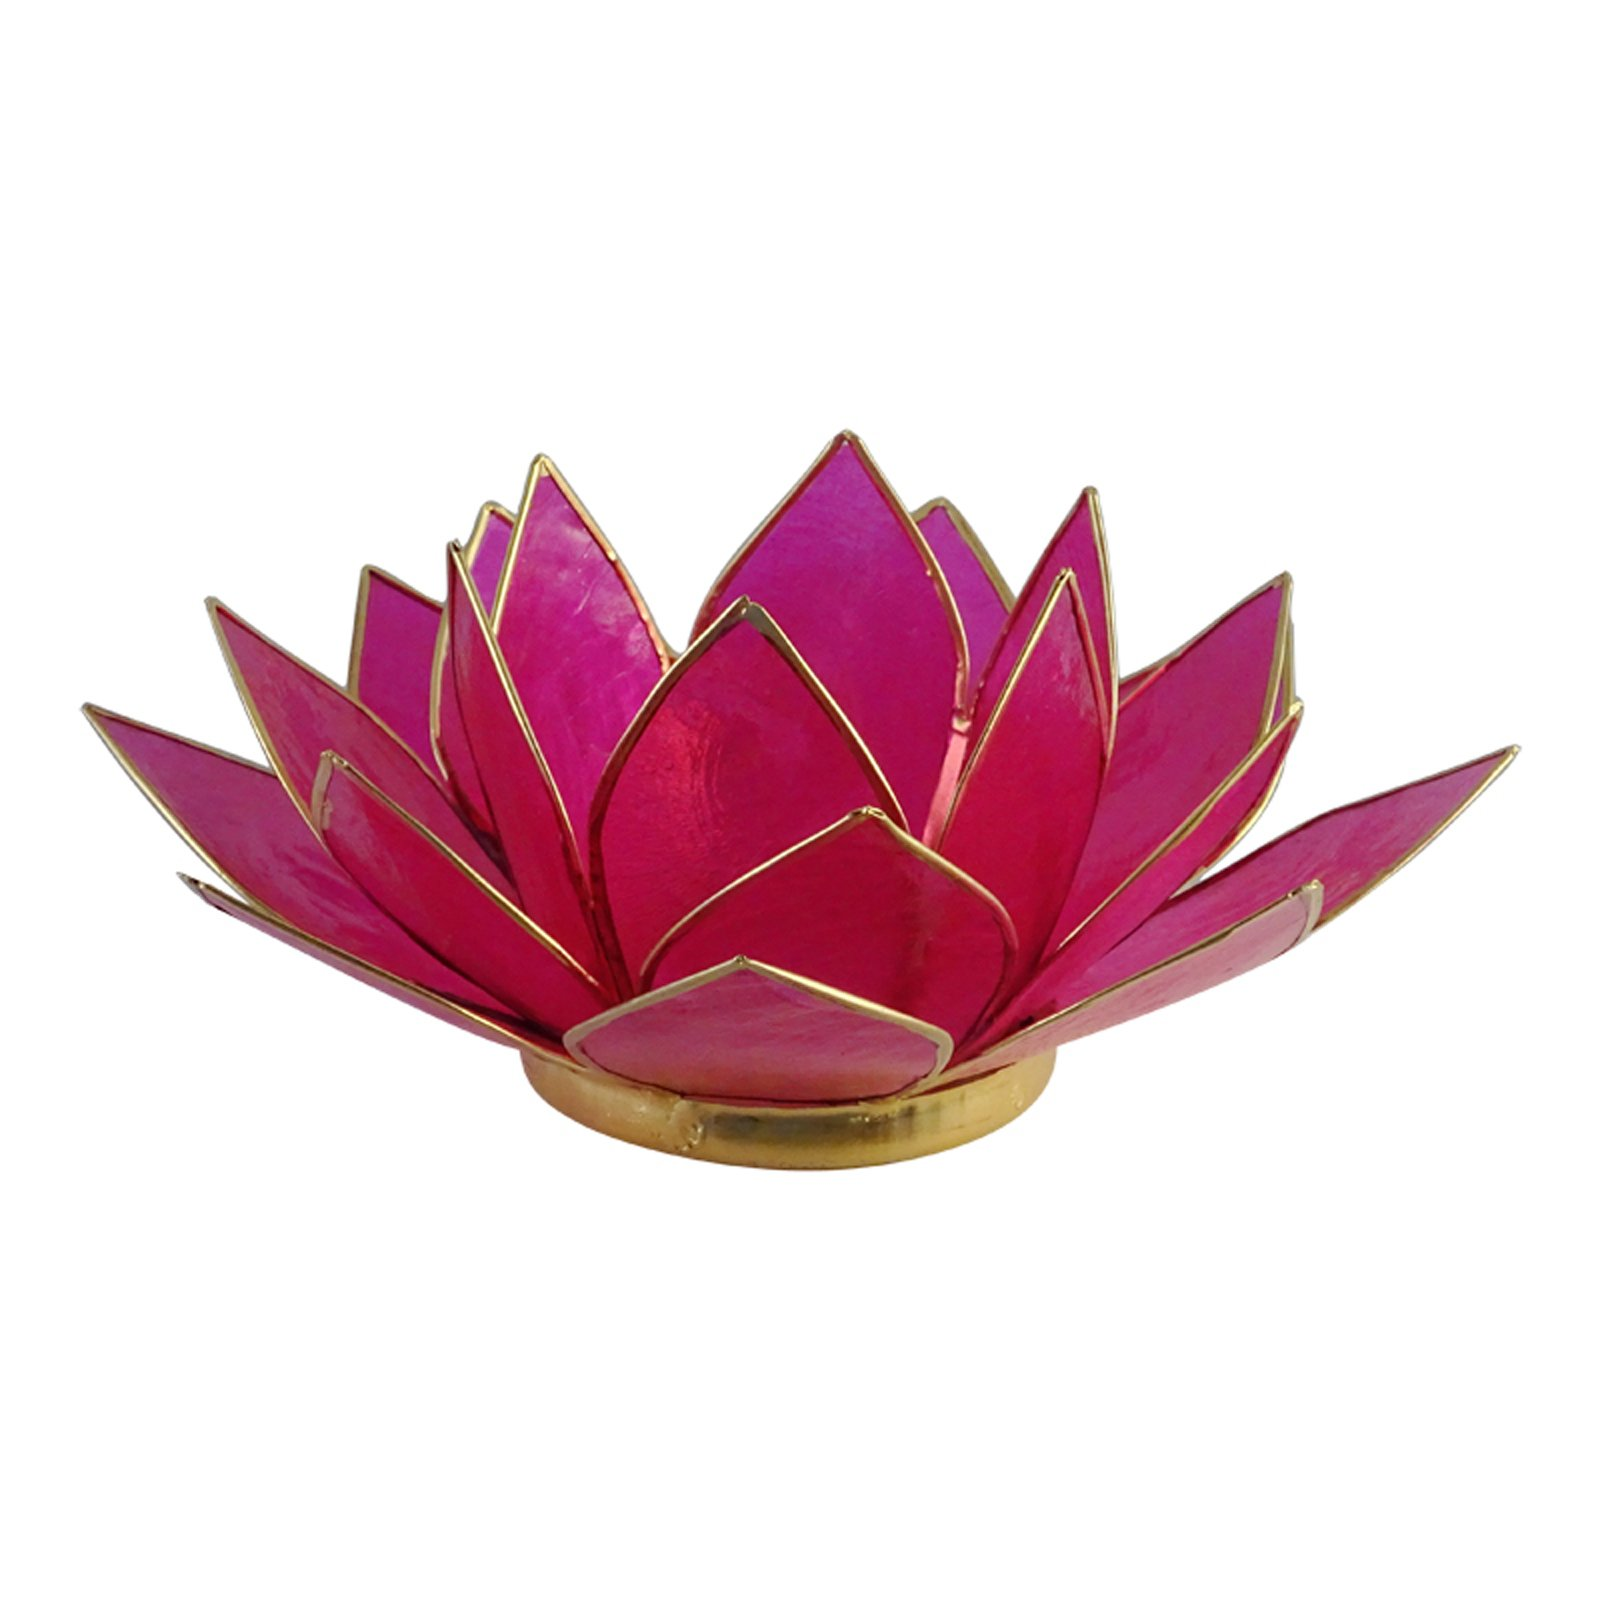 The Crabby Nook Lotus Tea Light Candle Holder Capiz Shell Decorating Accent Home Decor (Hot Pink)